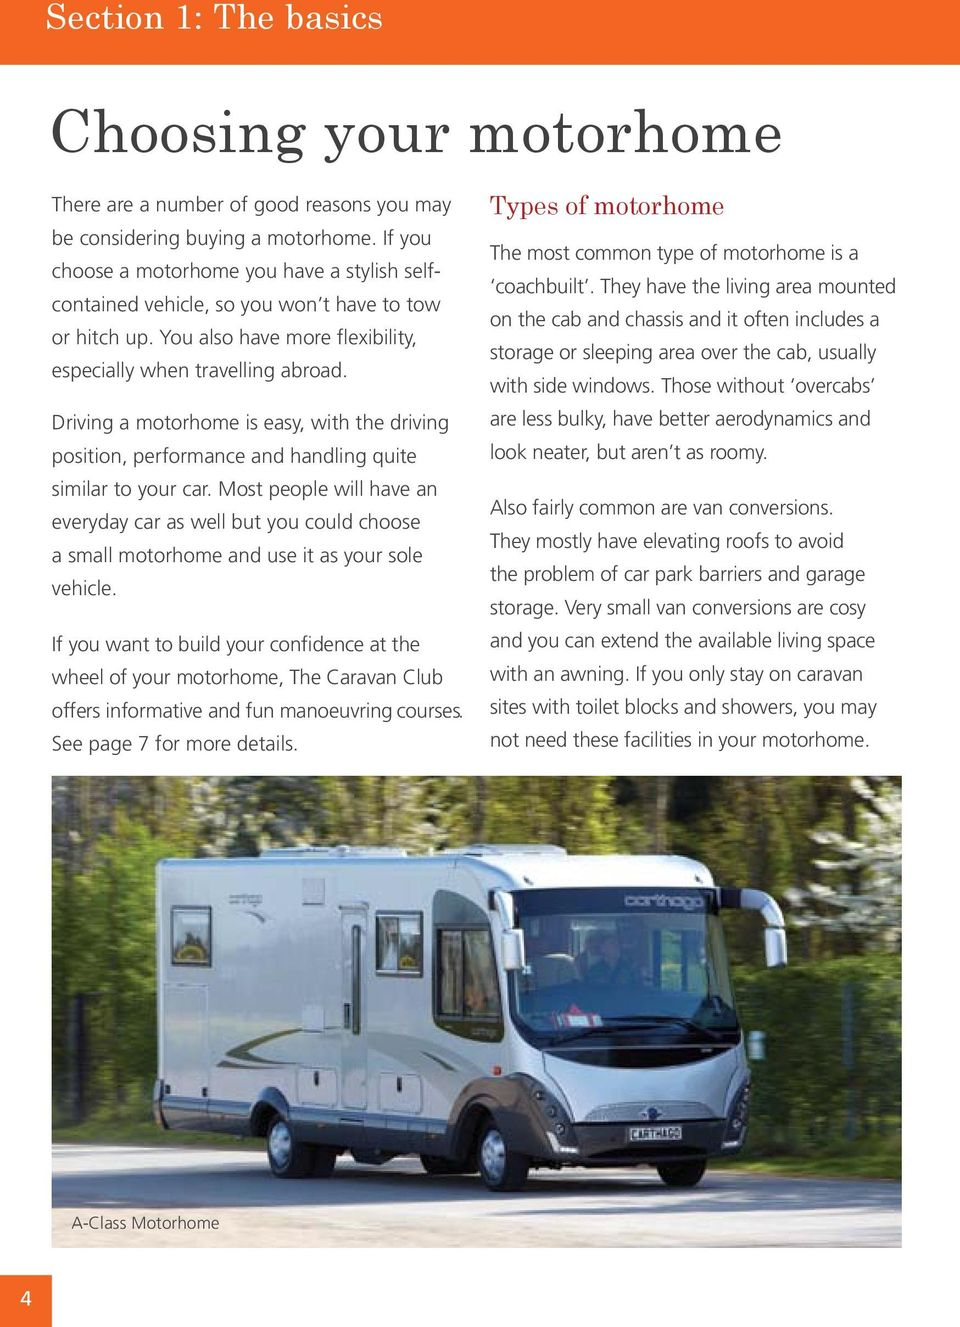 Driving a motorhome is easy, with the driving position, performance and  handling quite similar